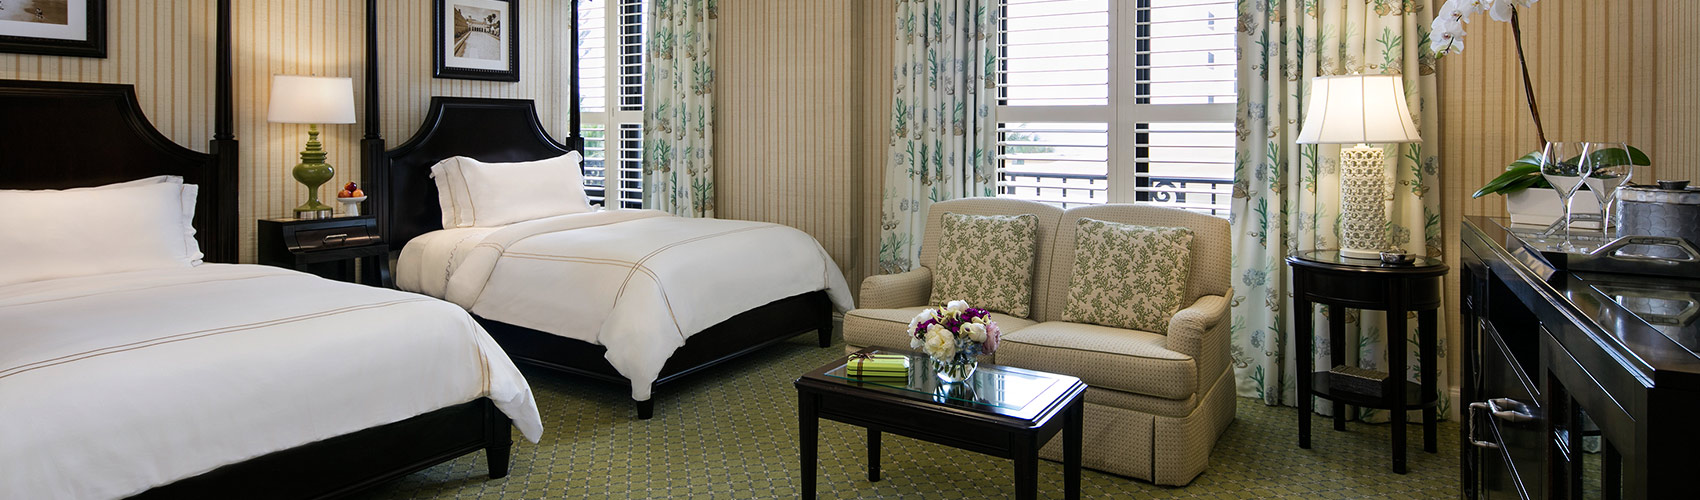 Junior Suite with Resort View and Double Beds